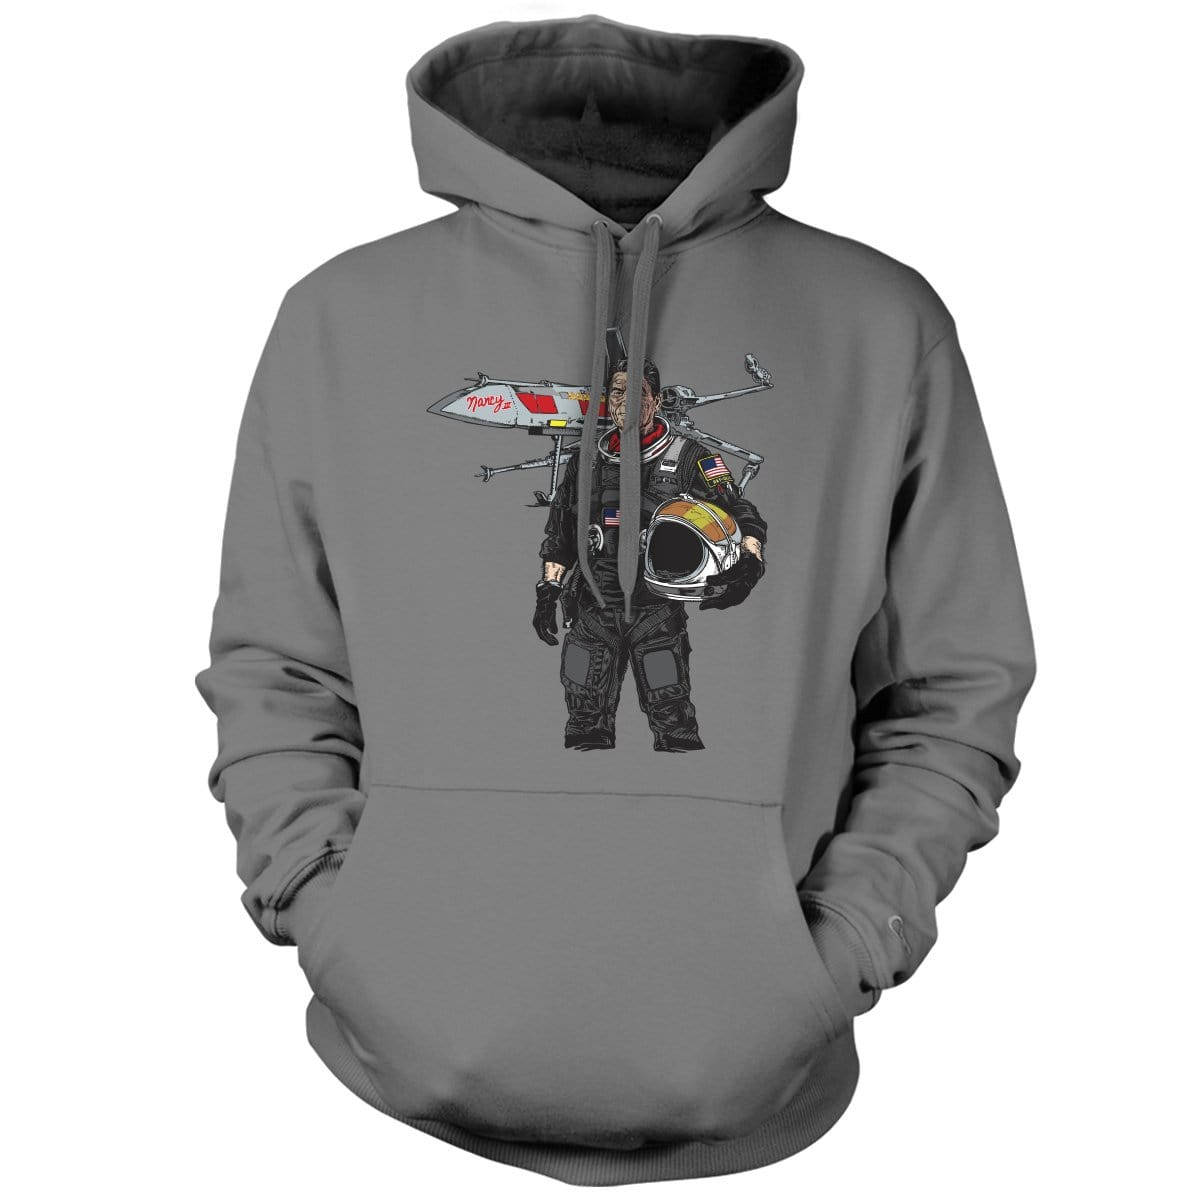 Original Pipe Hitter - Ronnie Hoodie - Grey - Hoodies - Pipe Hitters Union